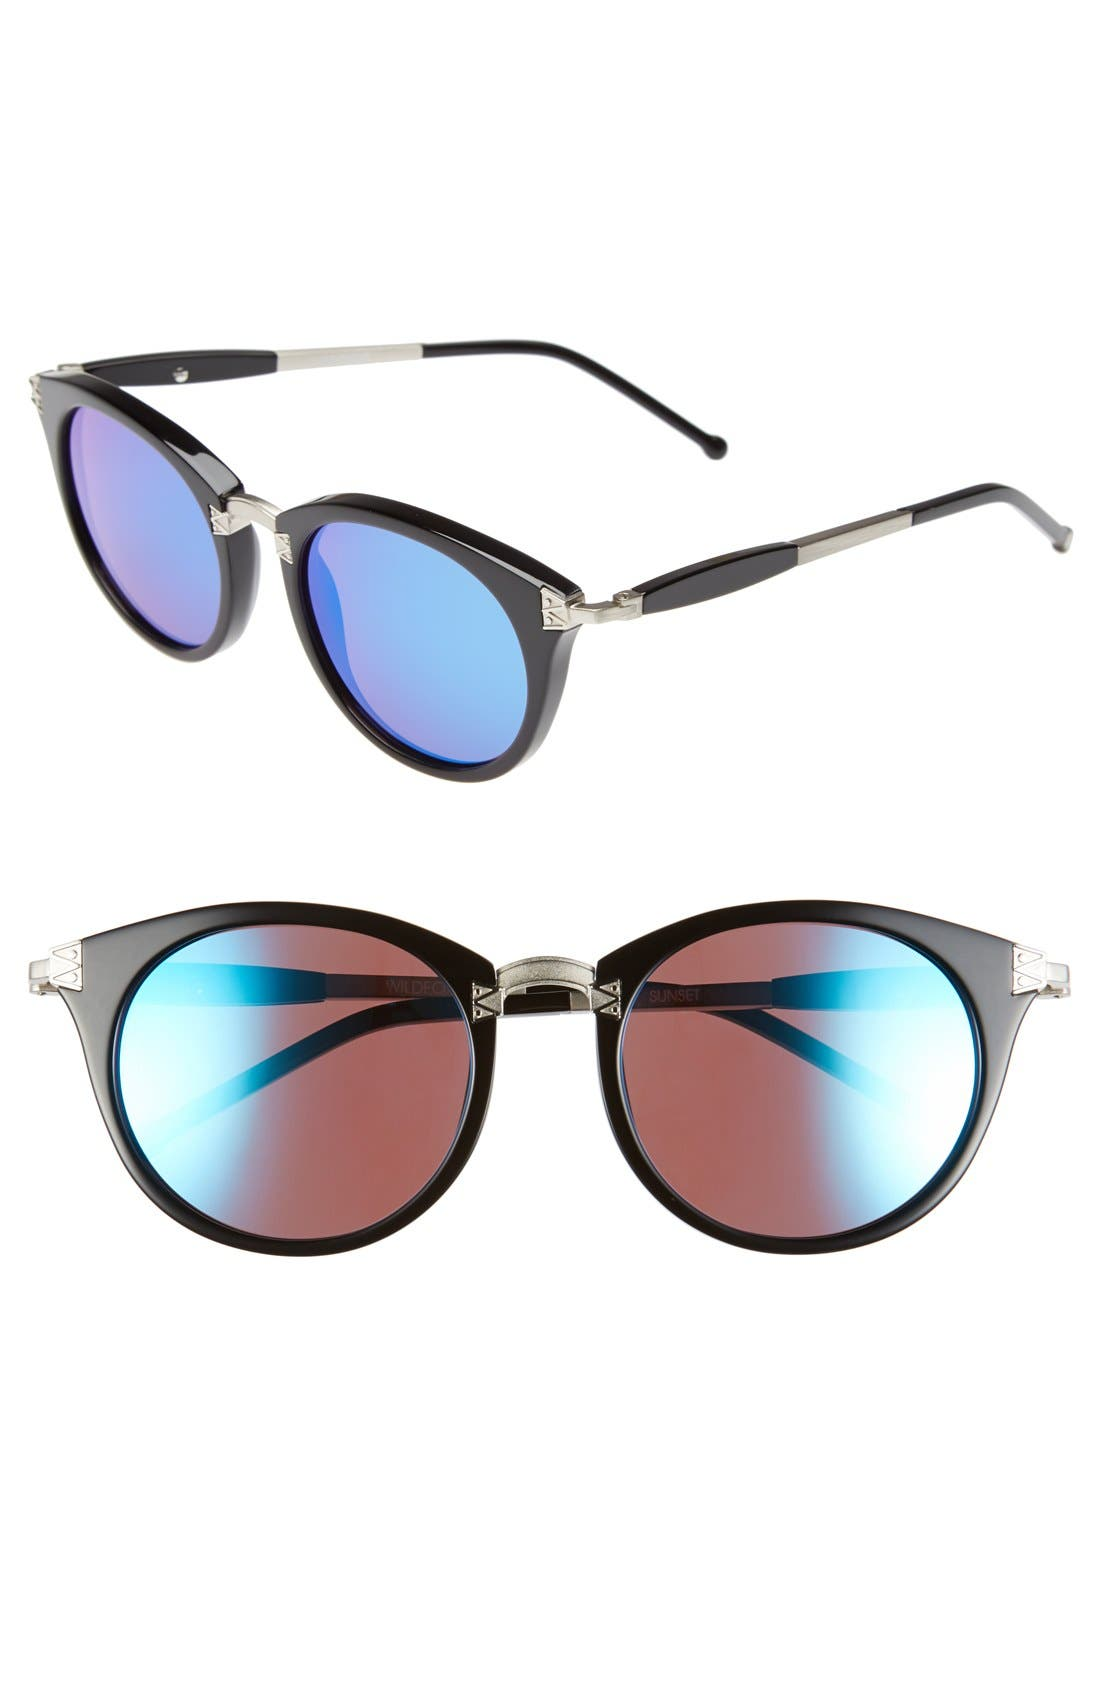 Main Image - Wildfox 'Sunset Deluxe' 48mm Retro Sunglasses